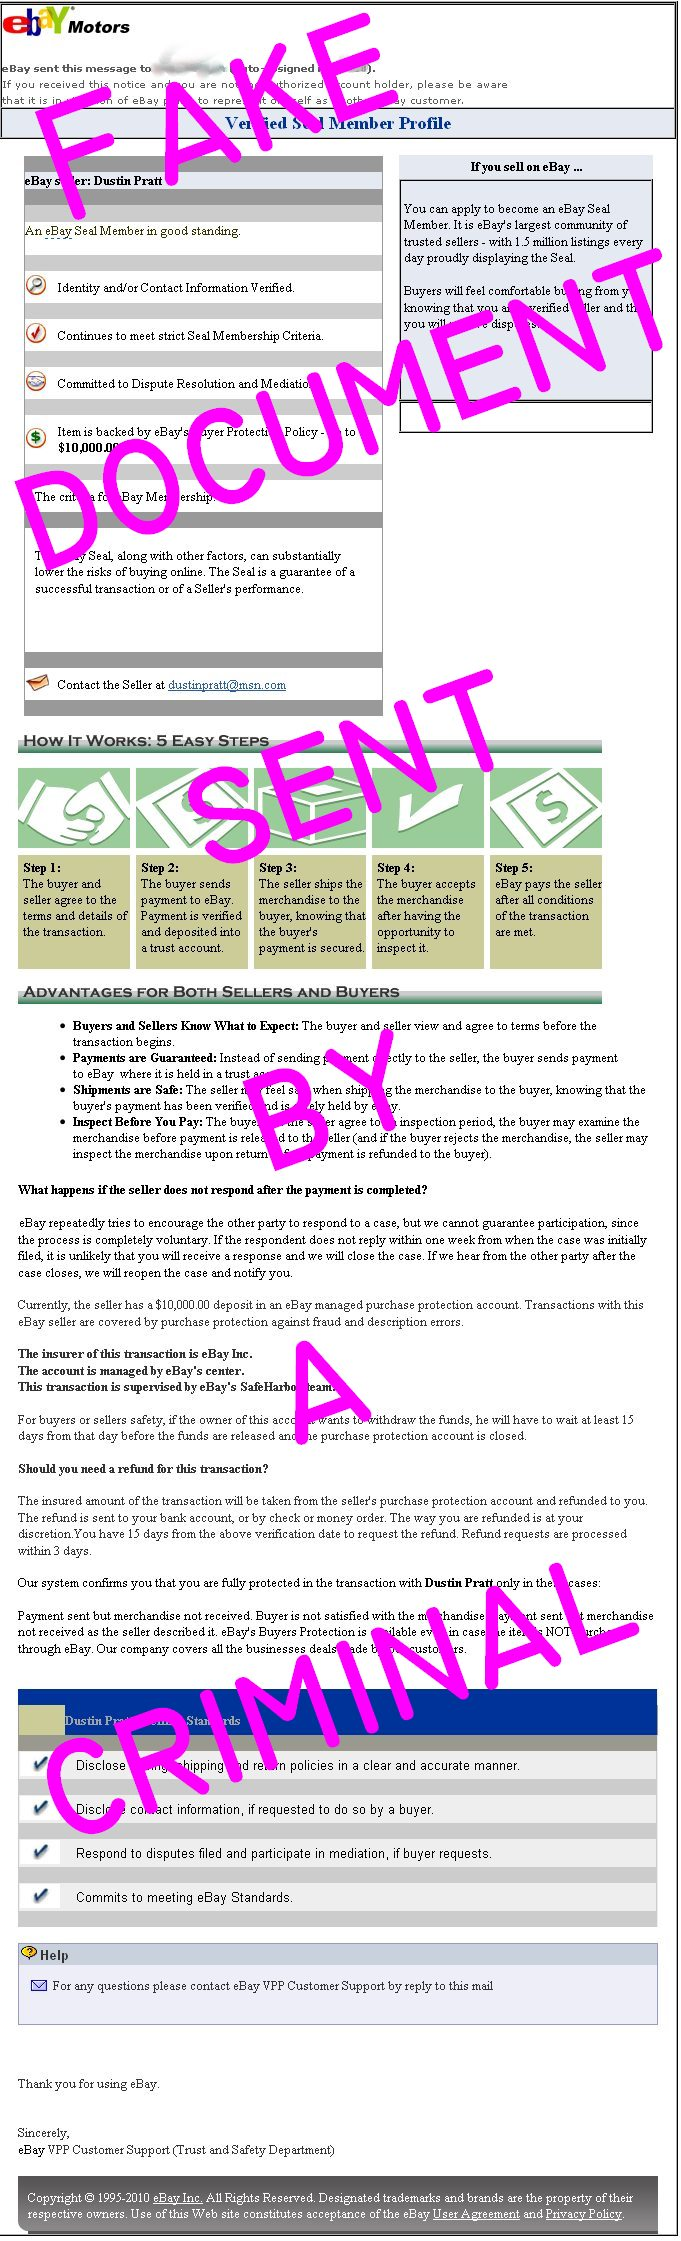 Please Confirm The Receipt Excel Rv  Scammer Database  Page  Government Tax Receipts Pdf with Squareup Receipt Pdf Text  Invoice Maker Software Pdf